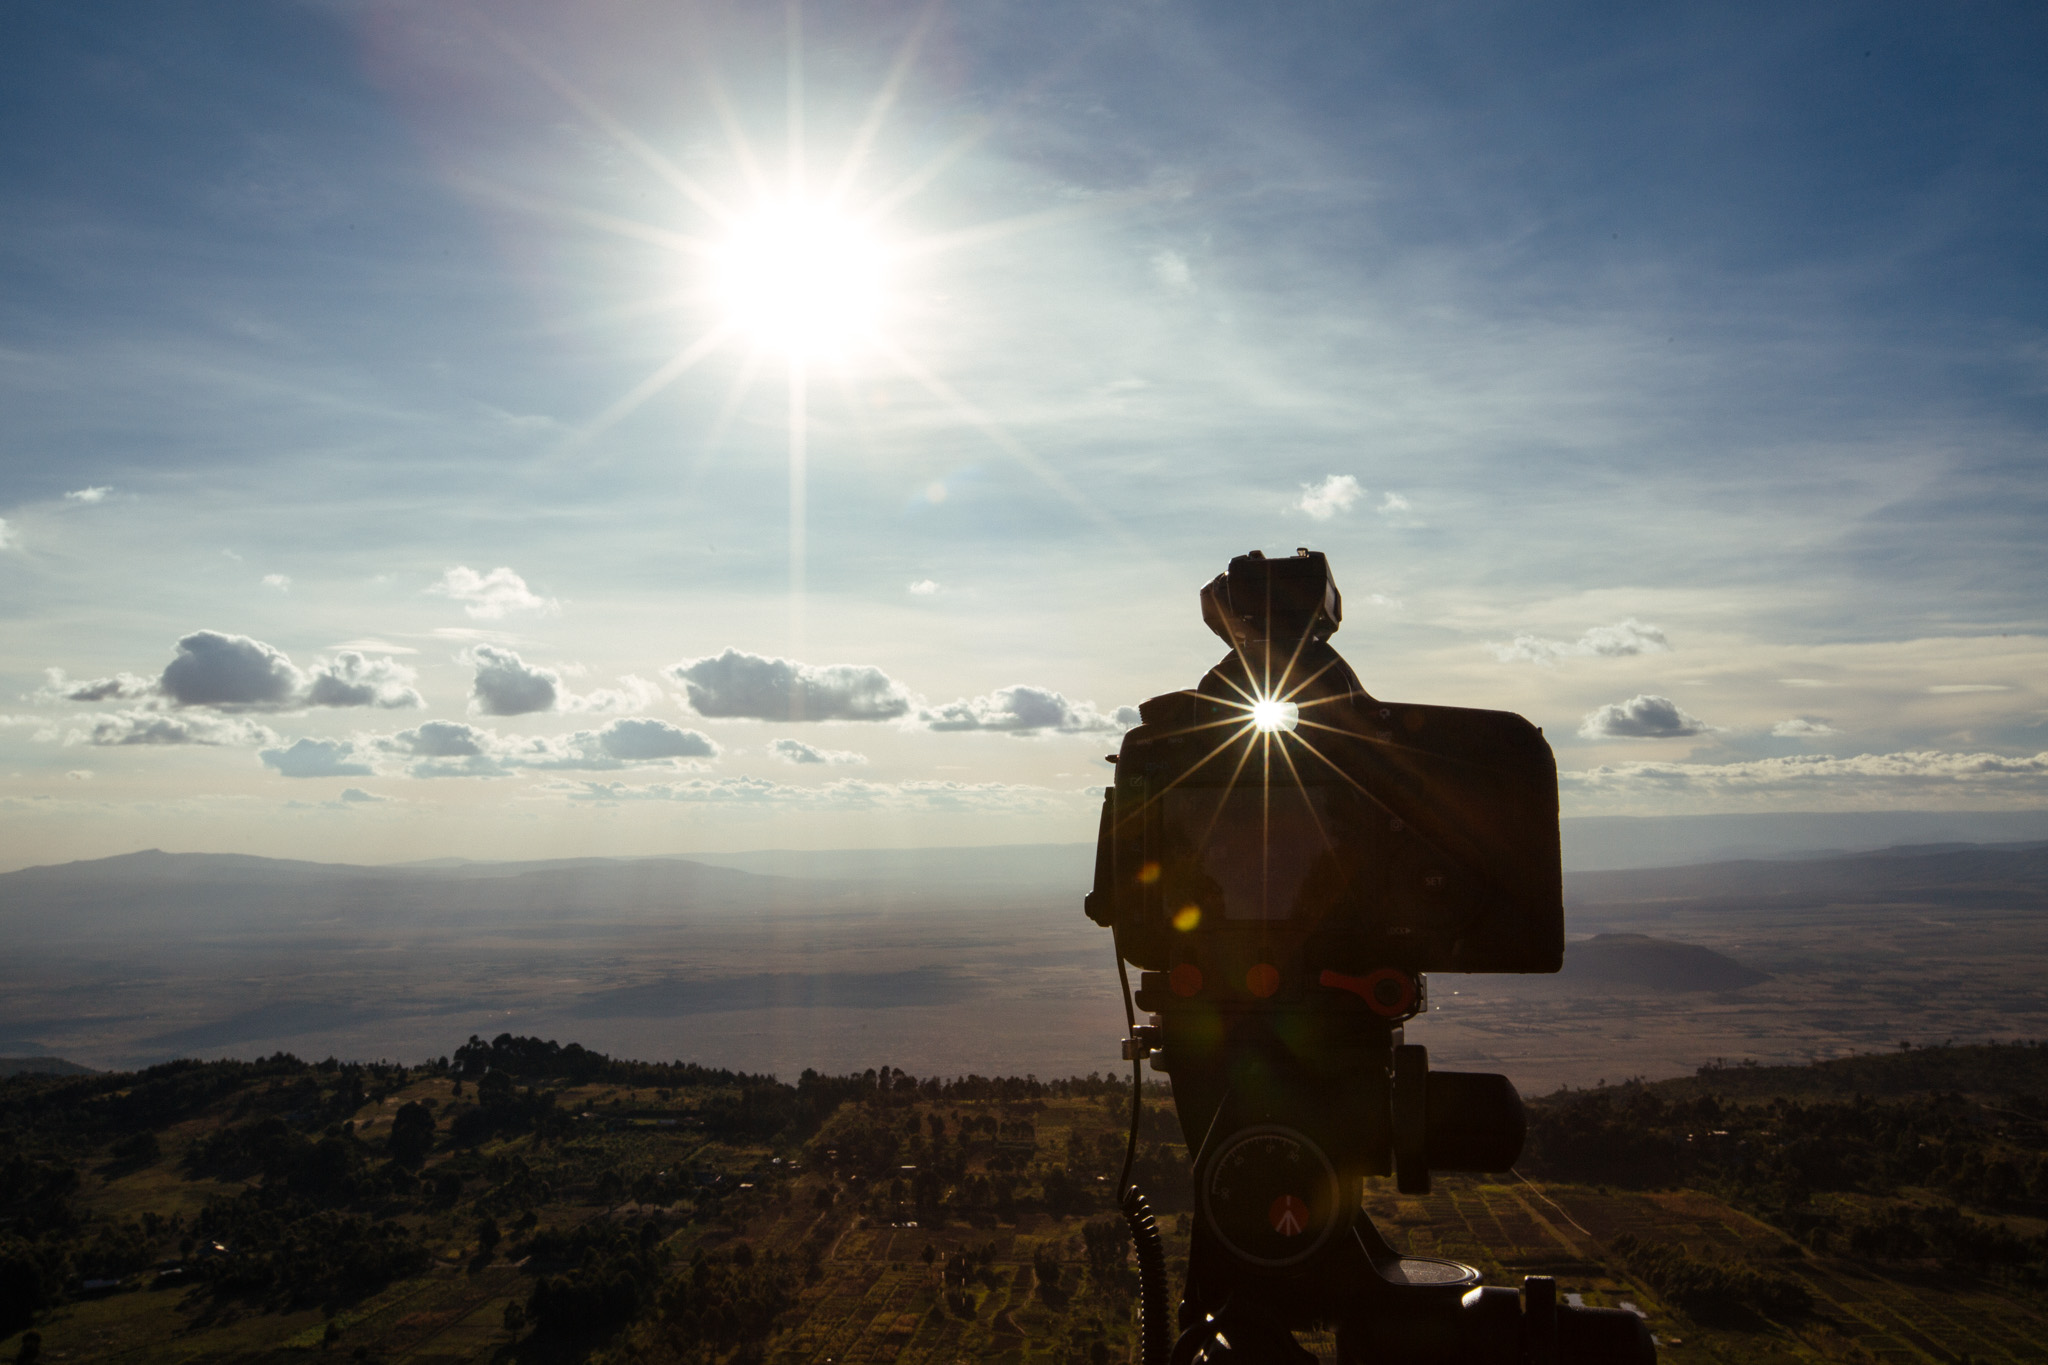 Shooting from the Ngong Hills and overlooking the Great Rift Valley.